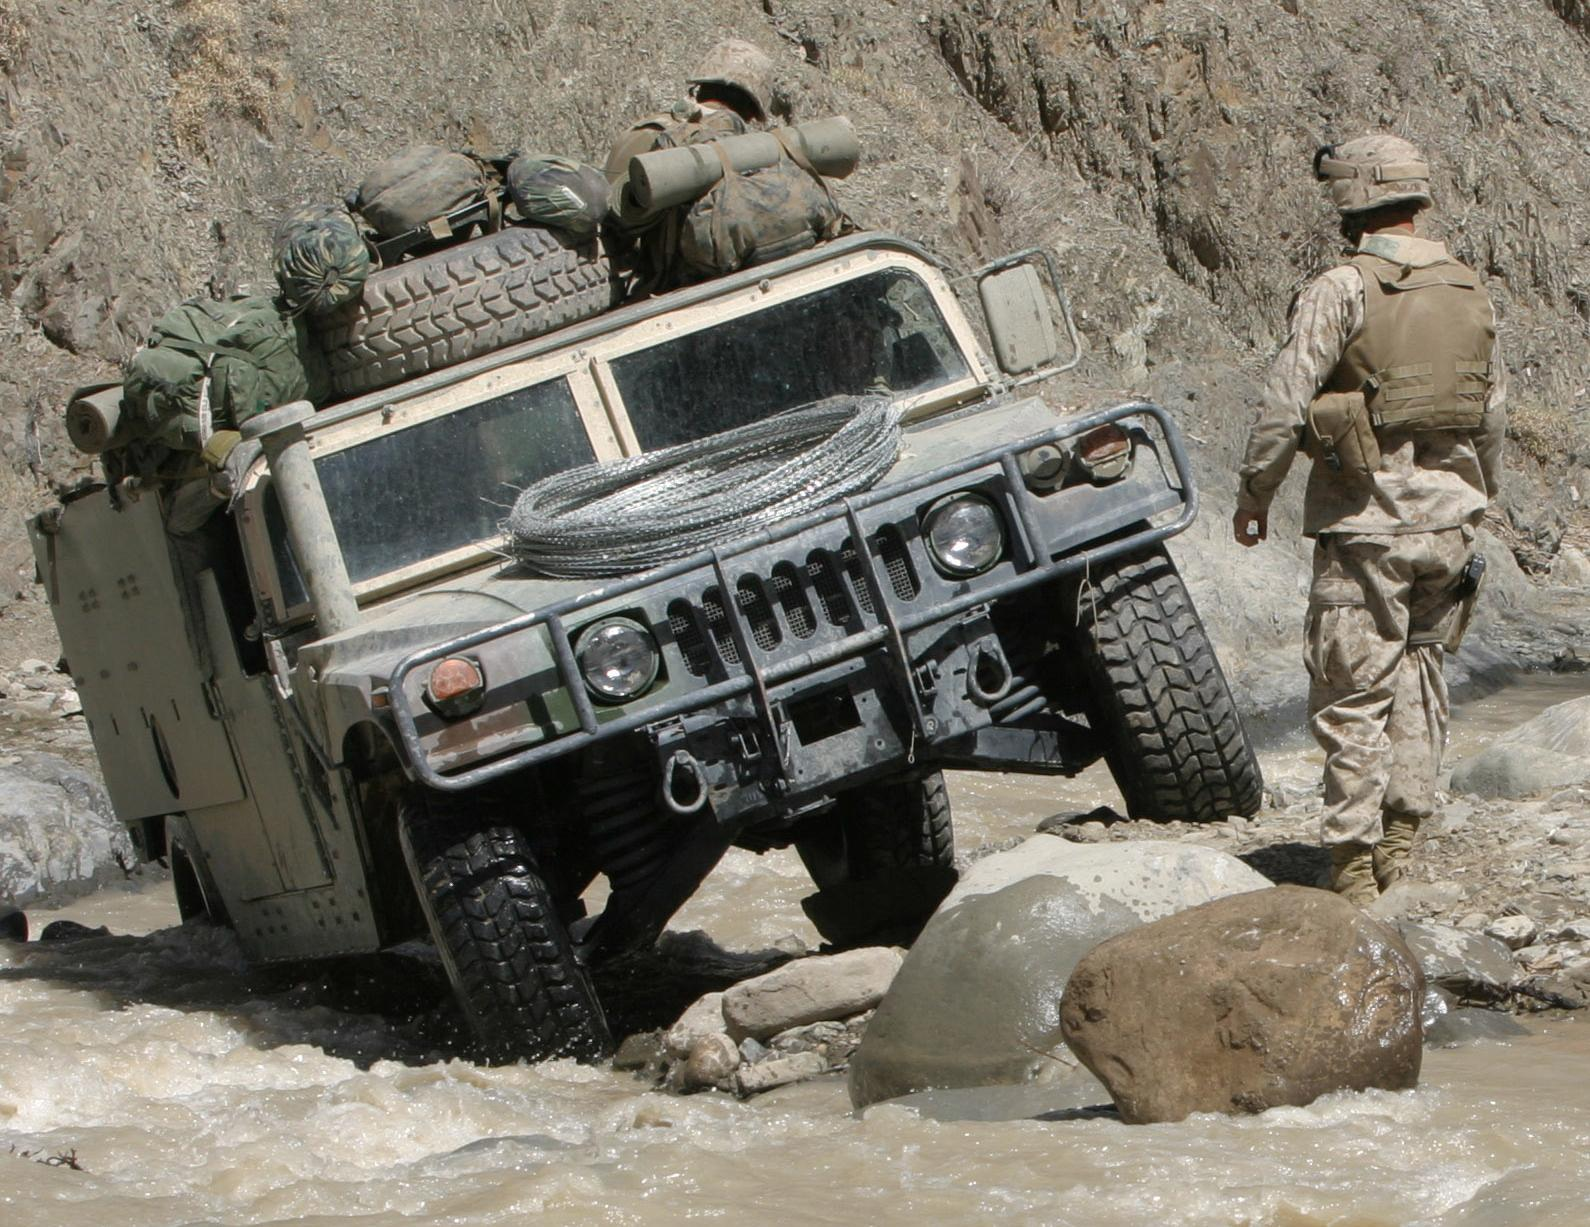 Humvee - Tractor & Construction Plant Wiki - The classic vehicle